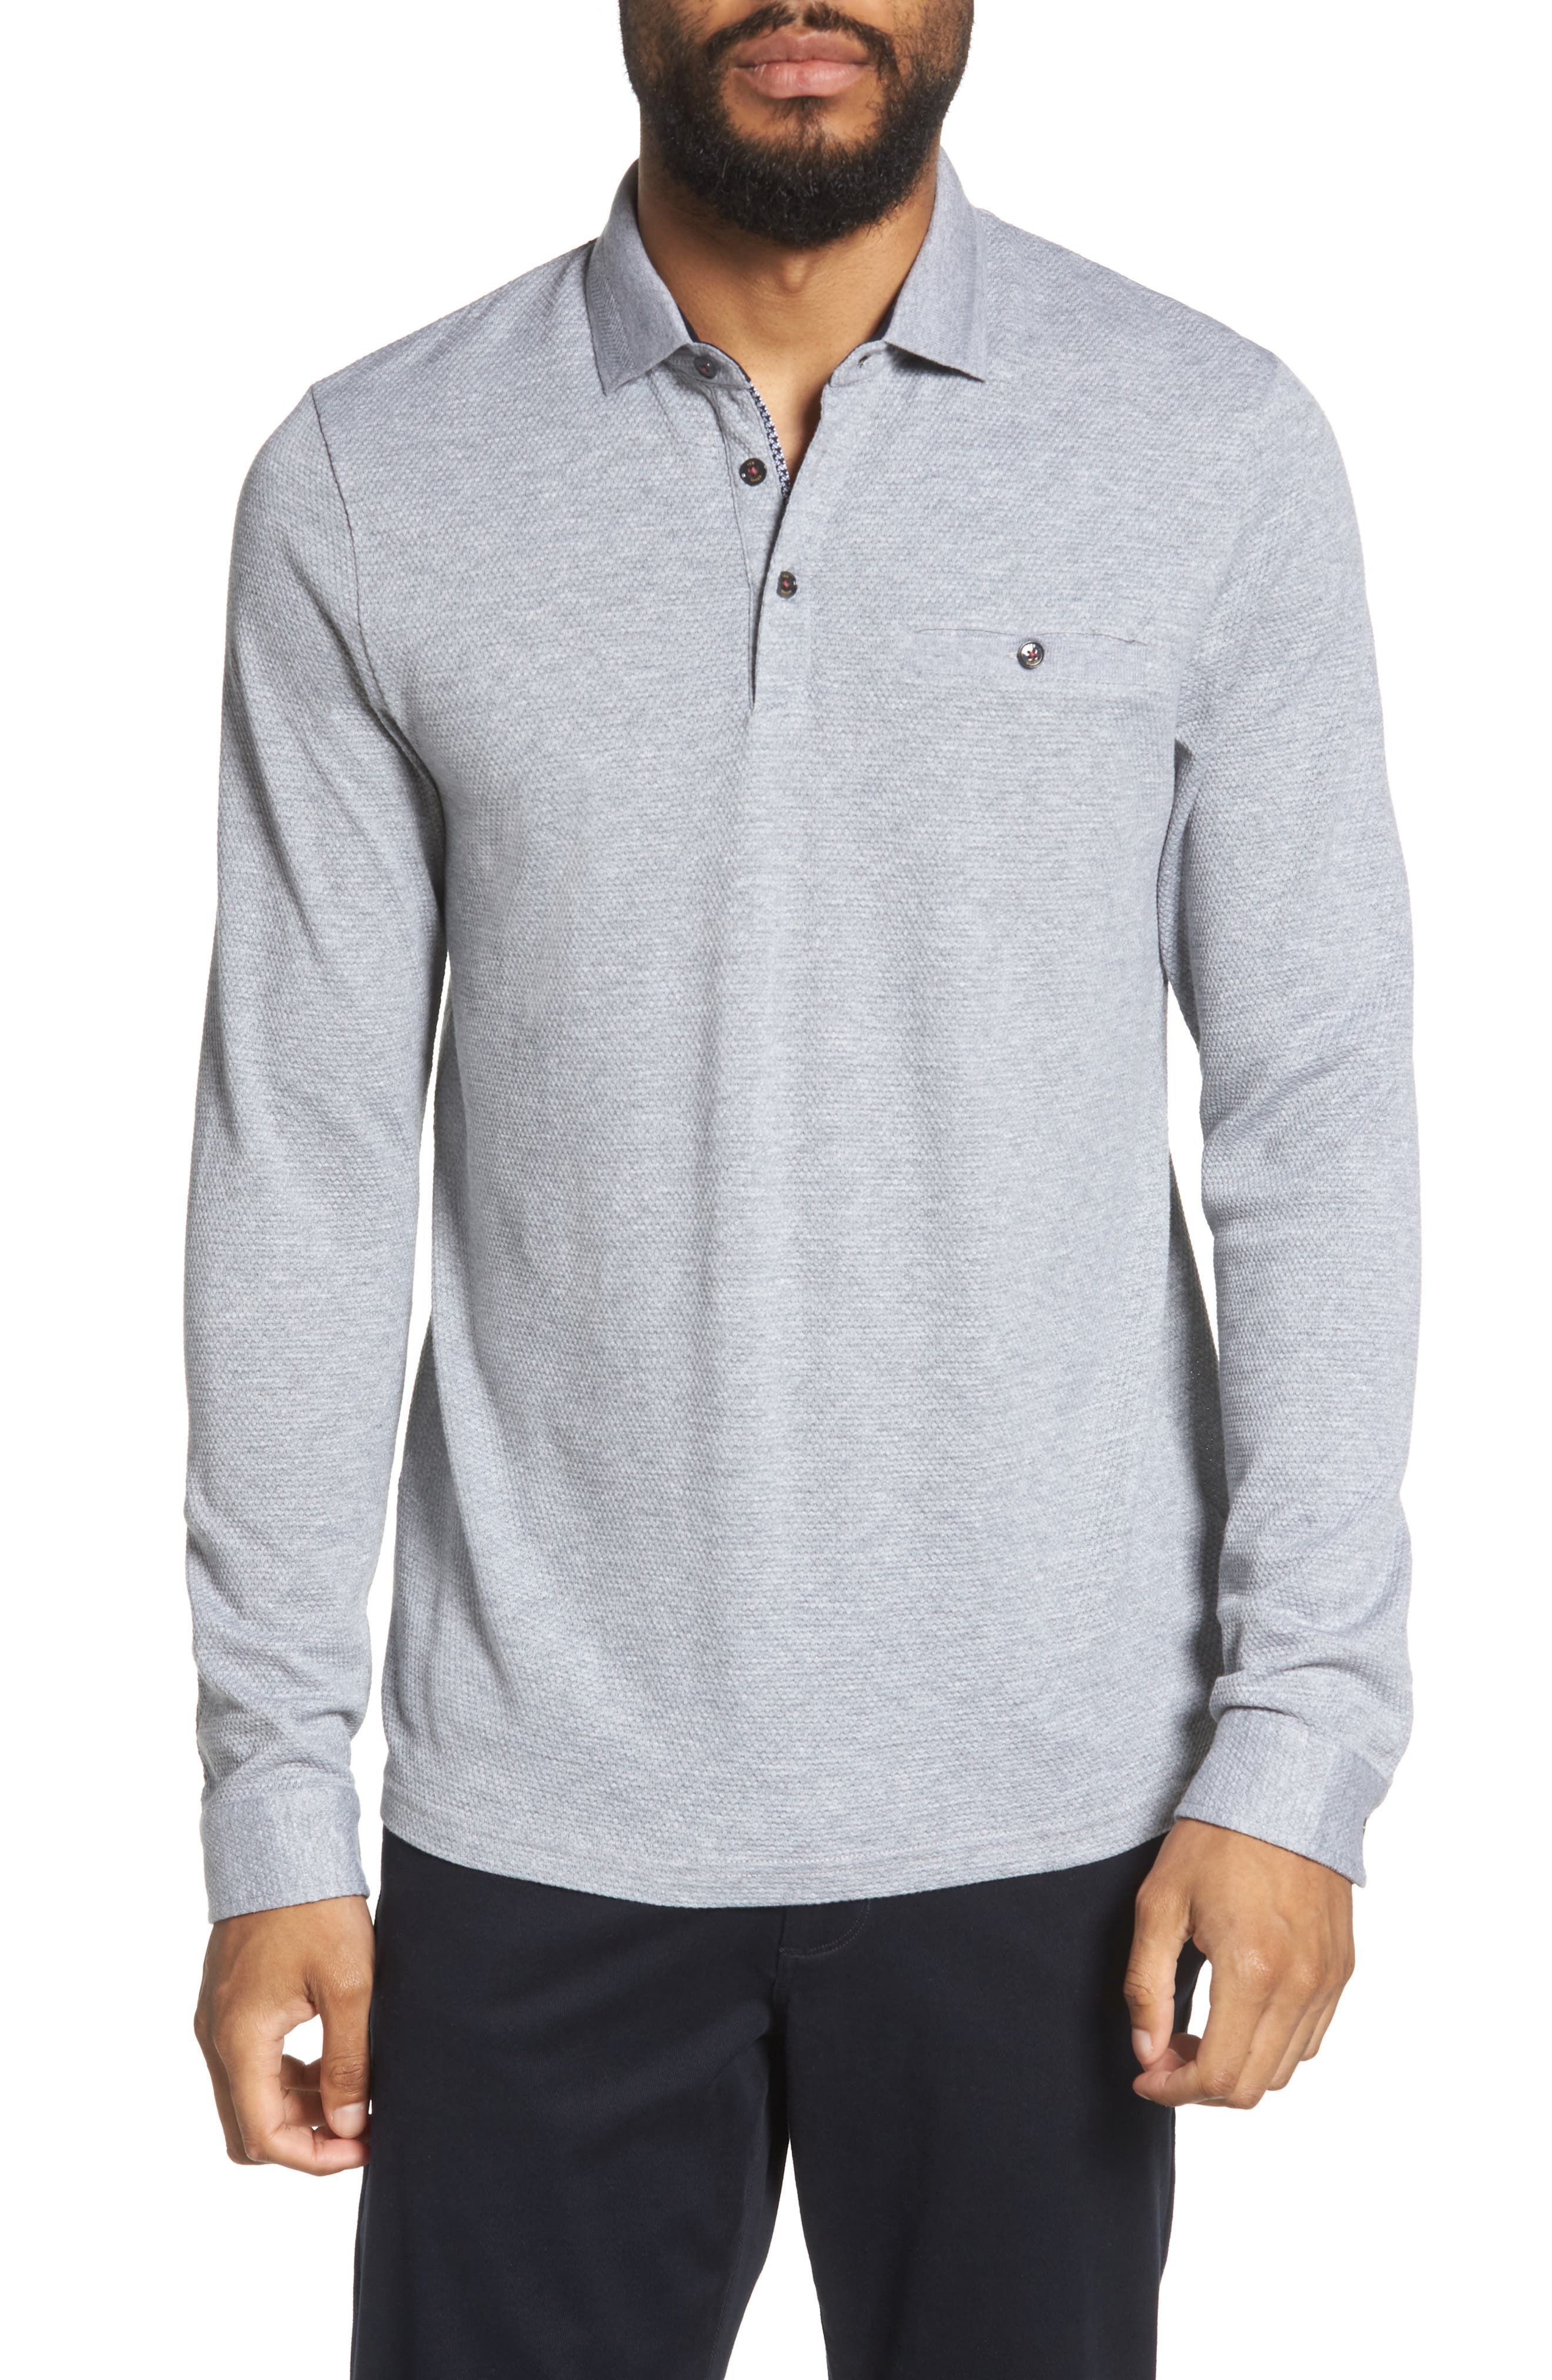 Scooby Trim Fit Long Sleeve Polo Shirt,                         Main,                         color,